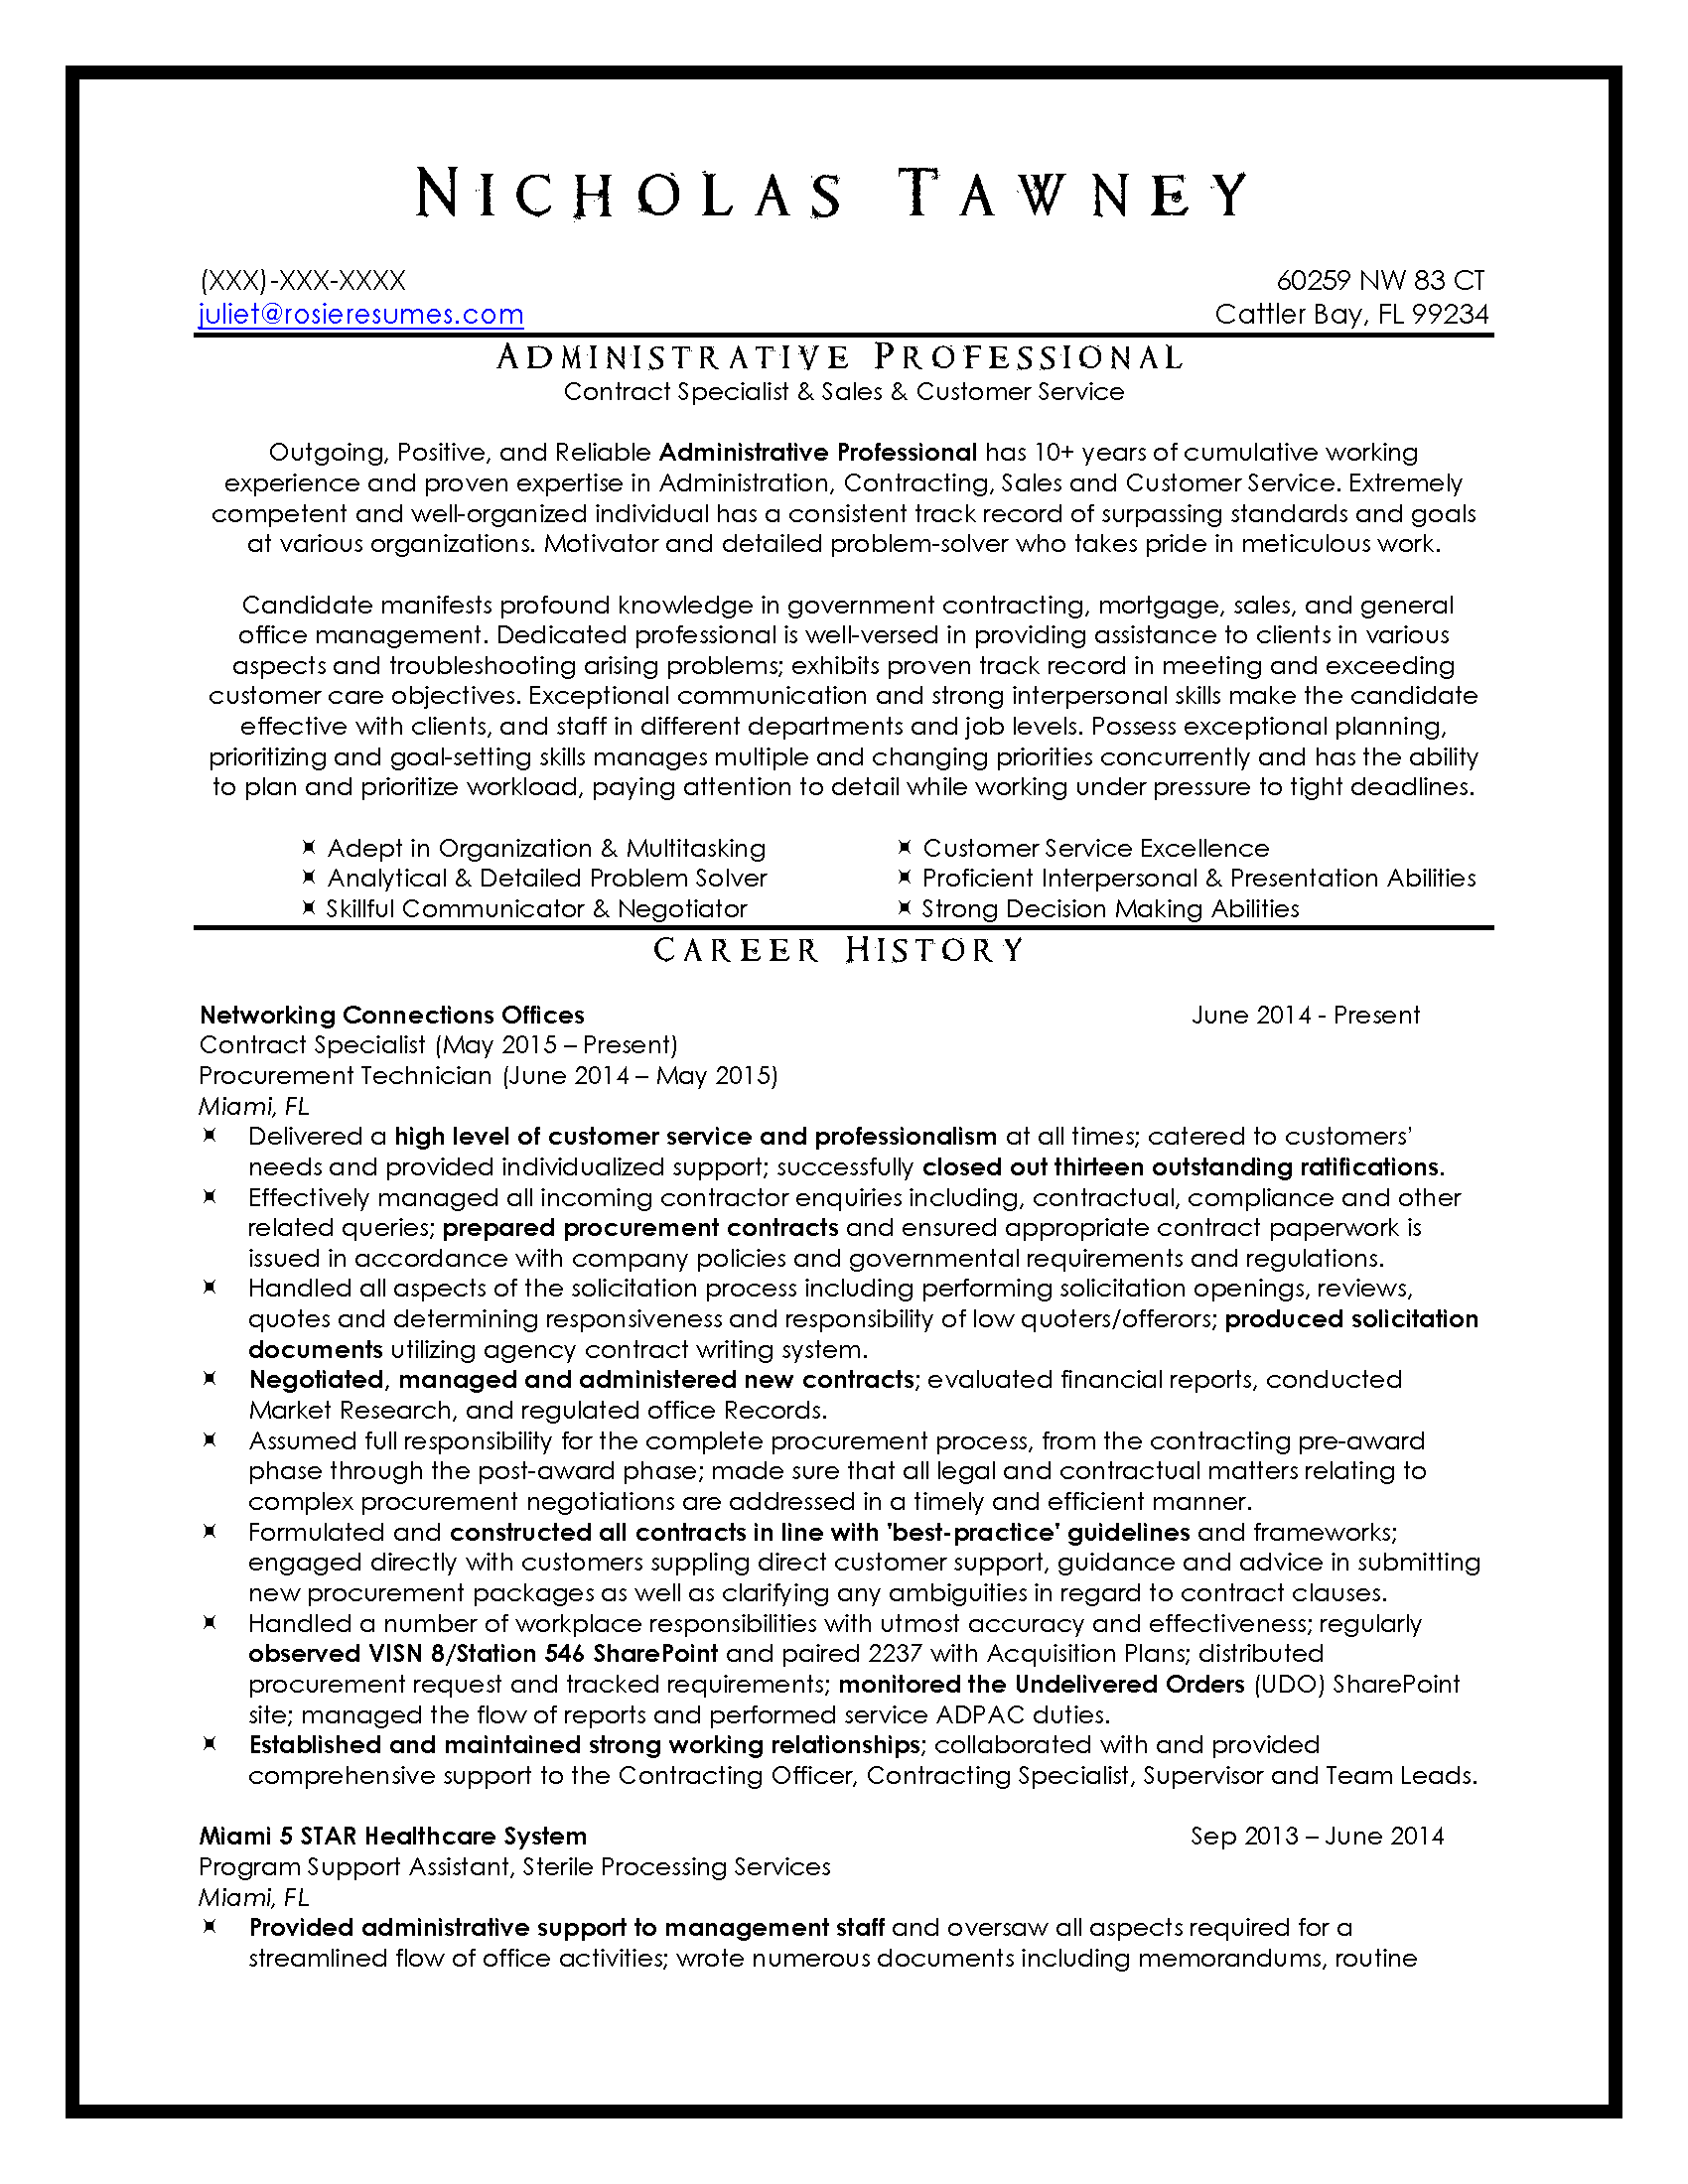 RRTRS Customer Service Resume Sample_Page_1